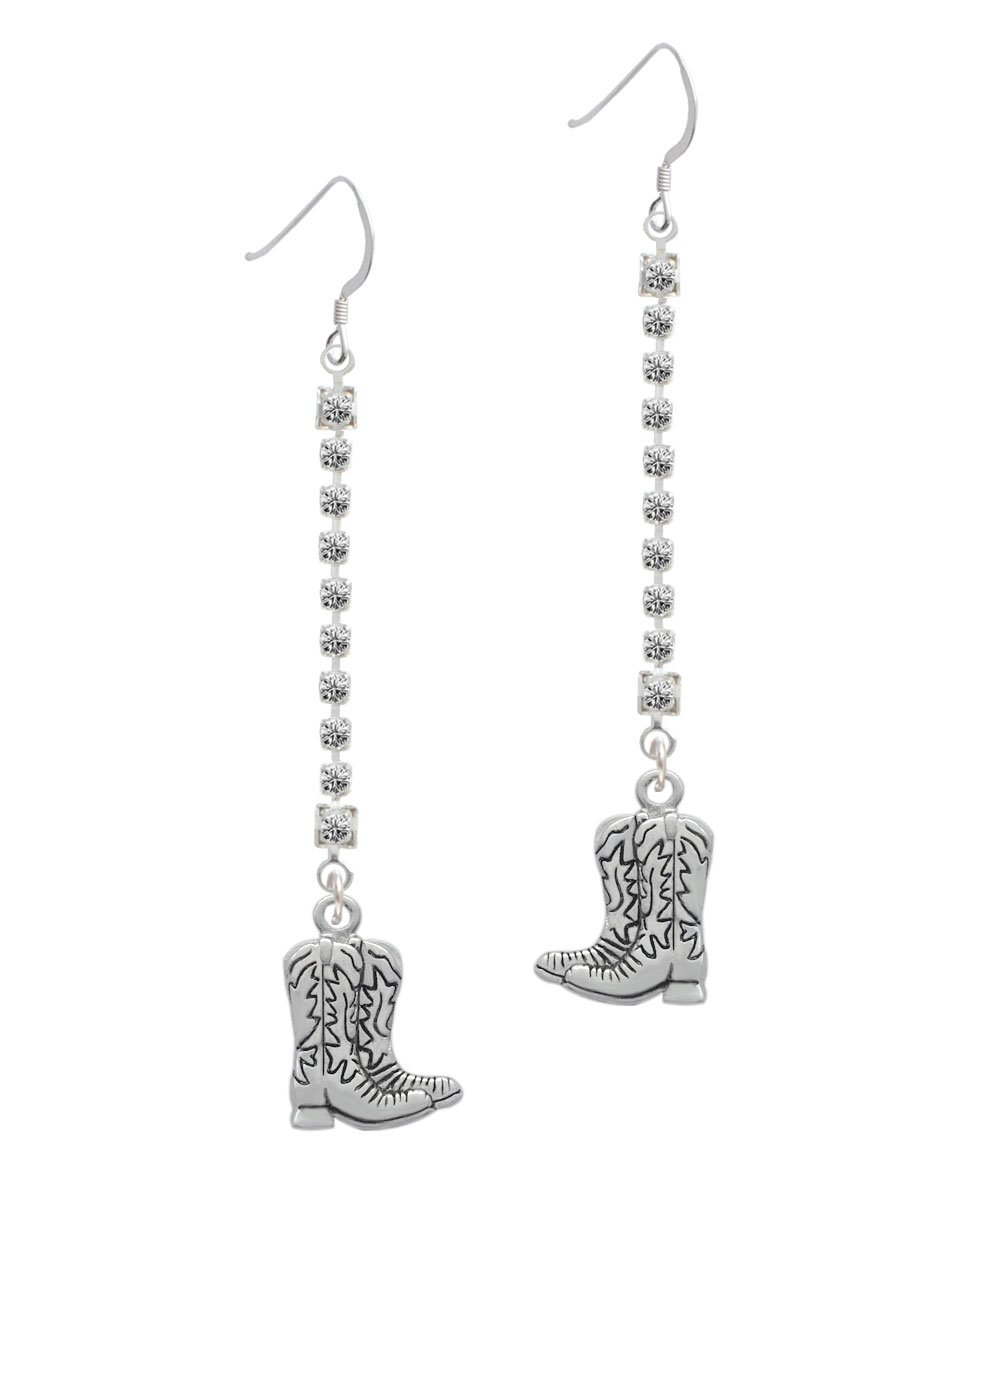 Silvertone Cowboy Boots Crystal Ava Earrings